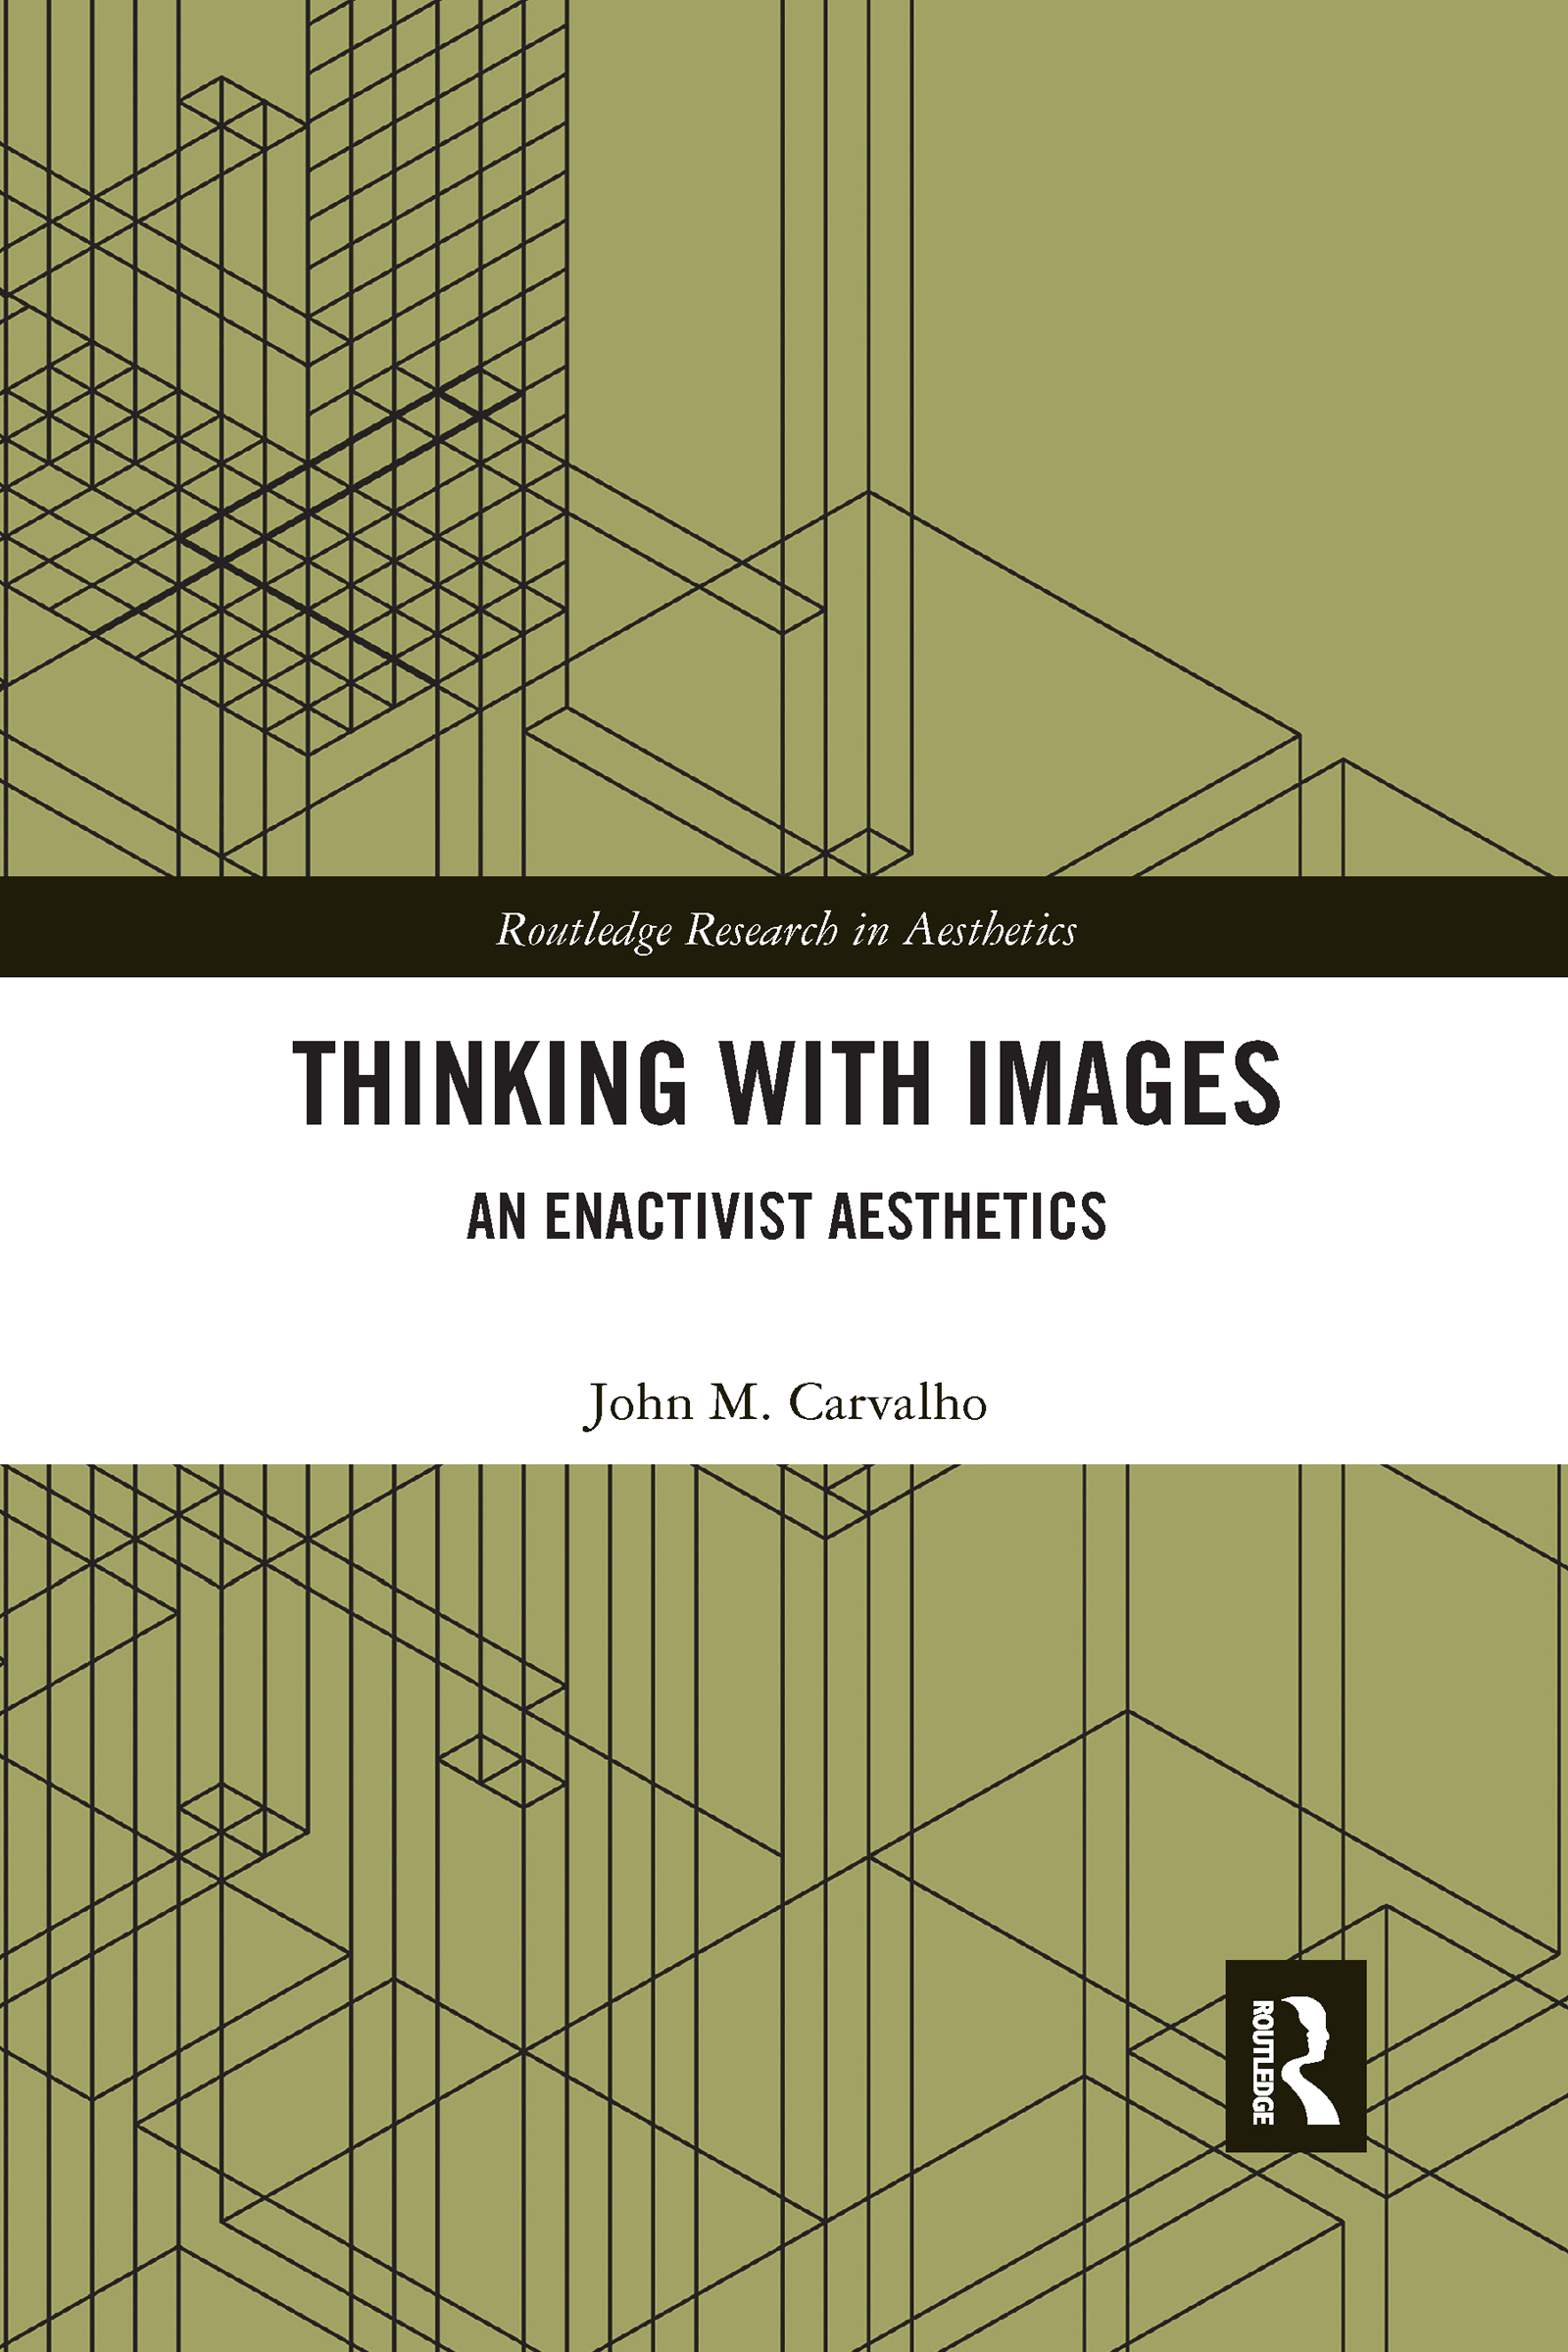 Thinking with Images